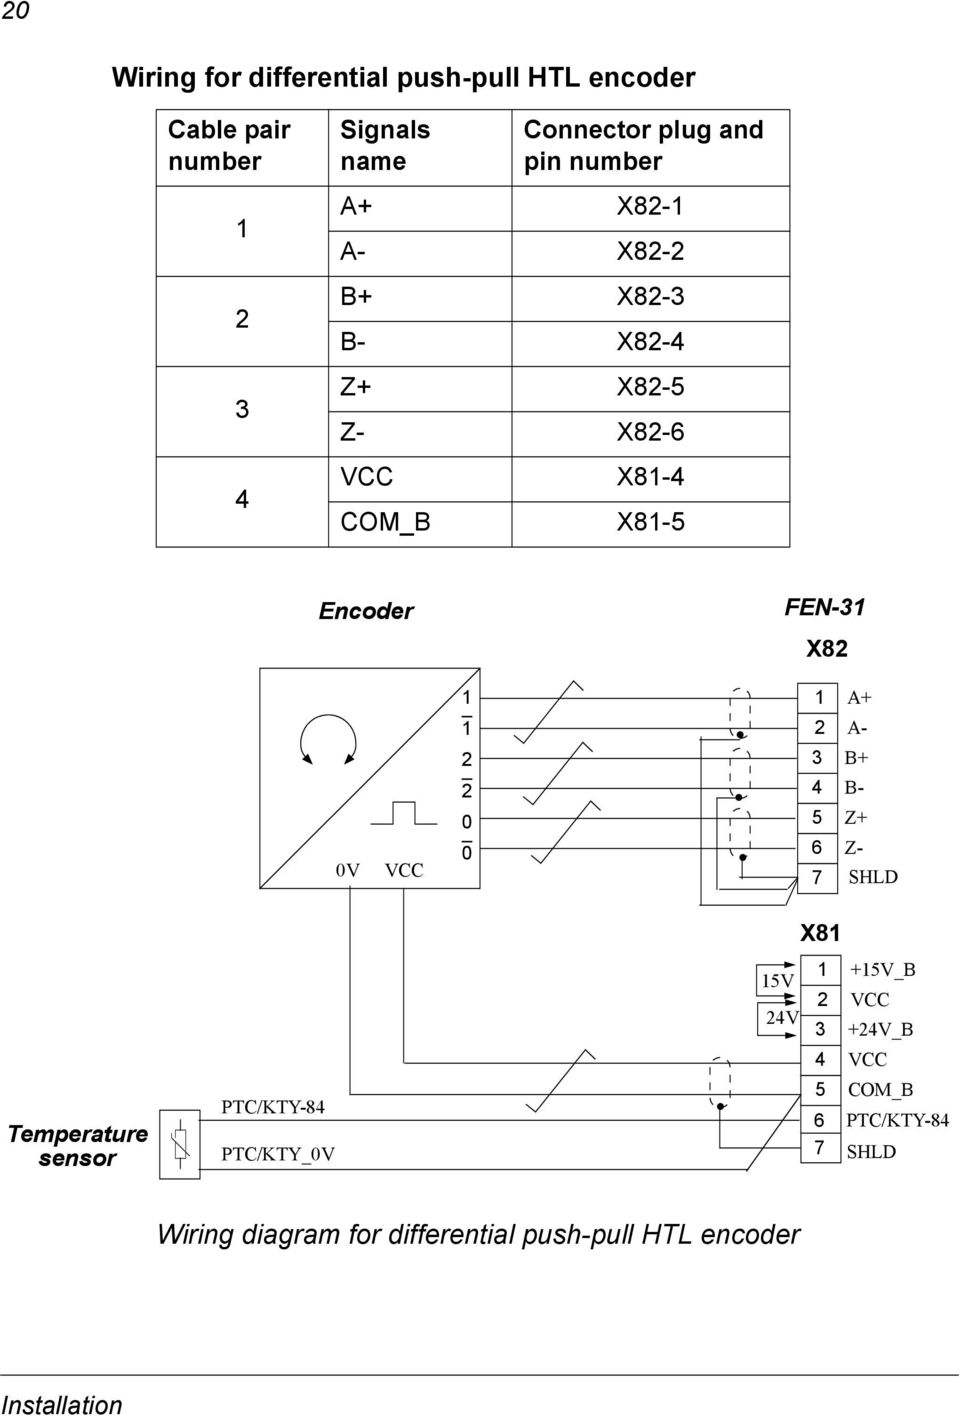 ... Wiring diagram for differential push-pull HTL encoder Installation. A-  2 3 B+ 2 4 B- 0 5 Z+ 0V VCC 0 6